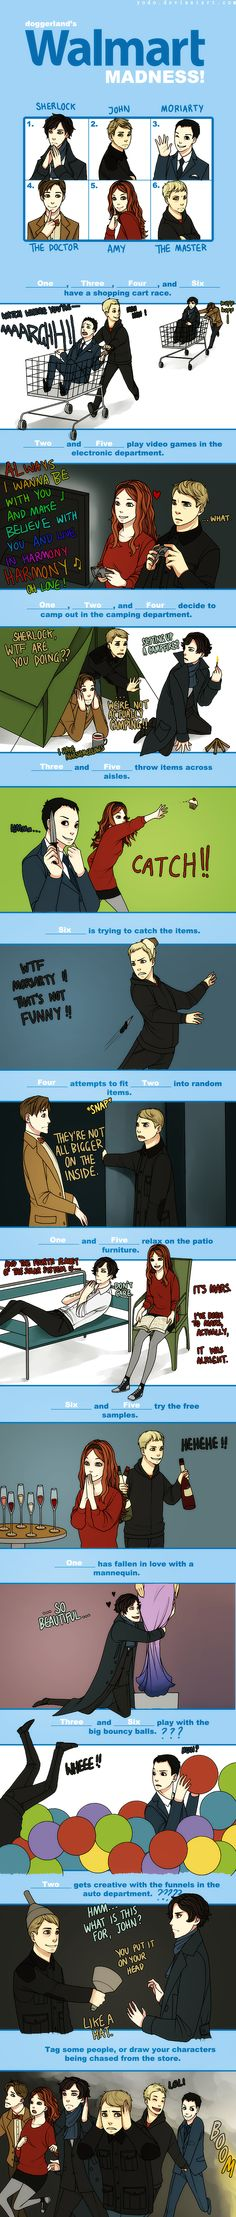 haha what doctor who and sherlock do at walmart! i find it awesome that the master and jim are holding hands